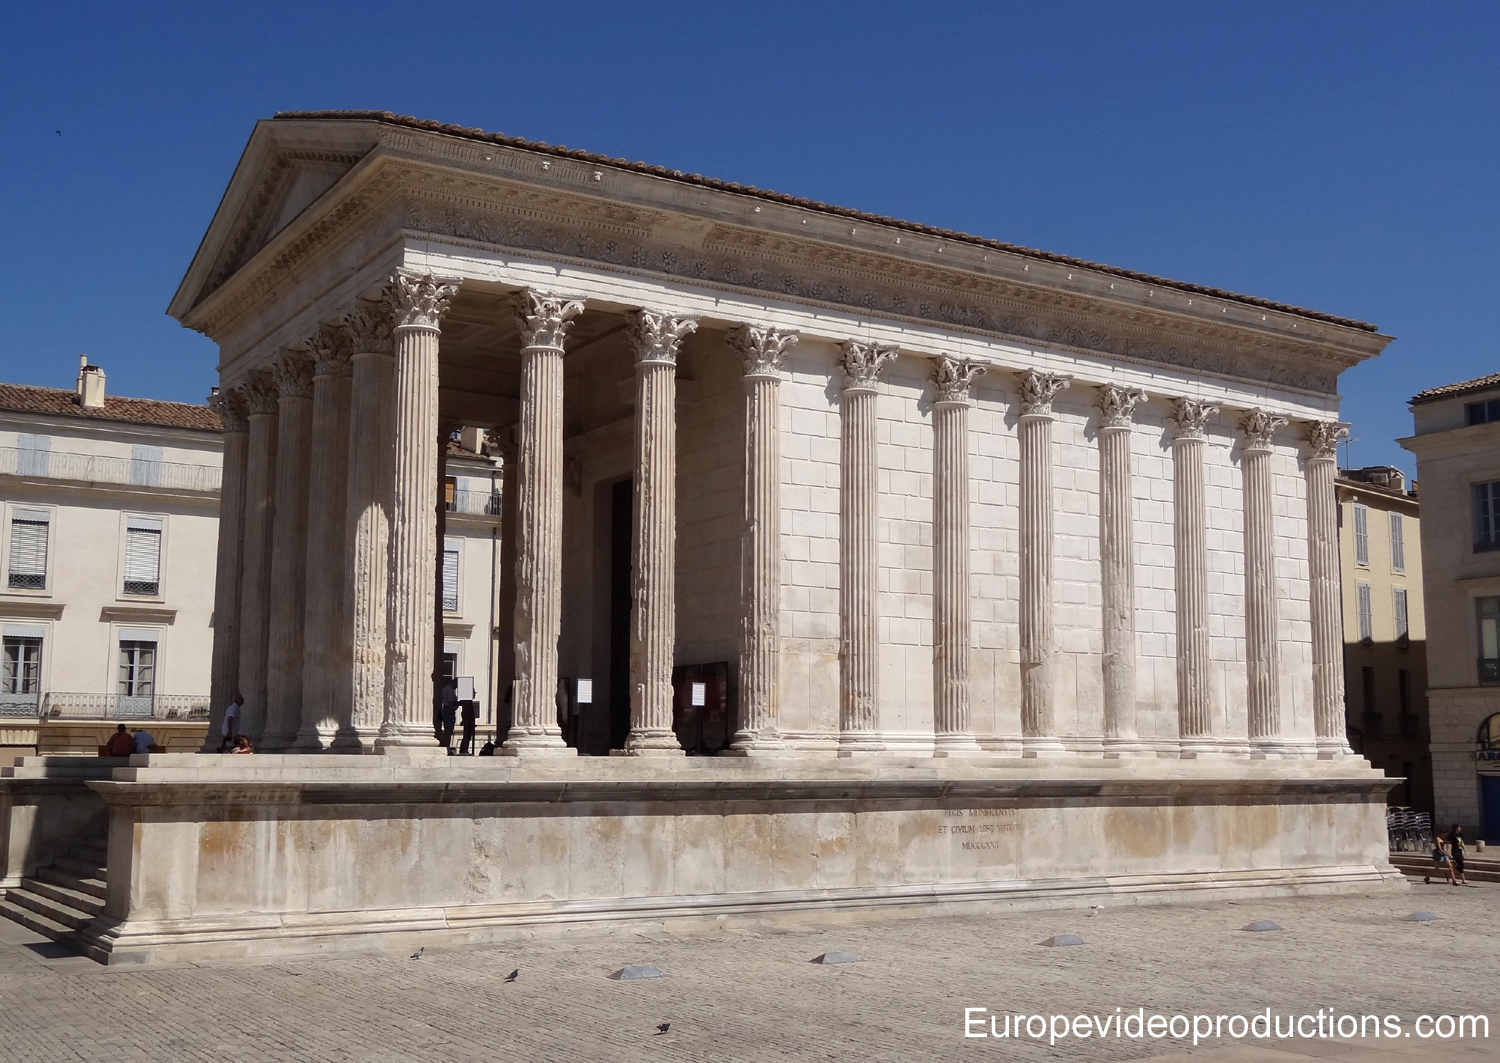 Maison Carrée in Nîmes, France